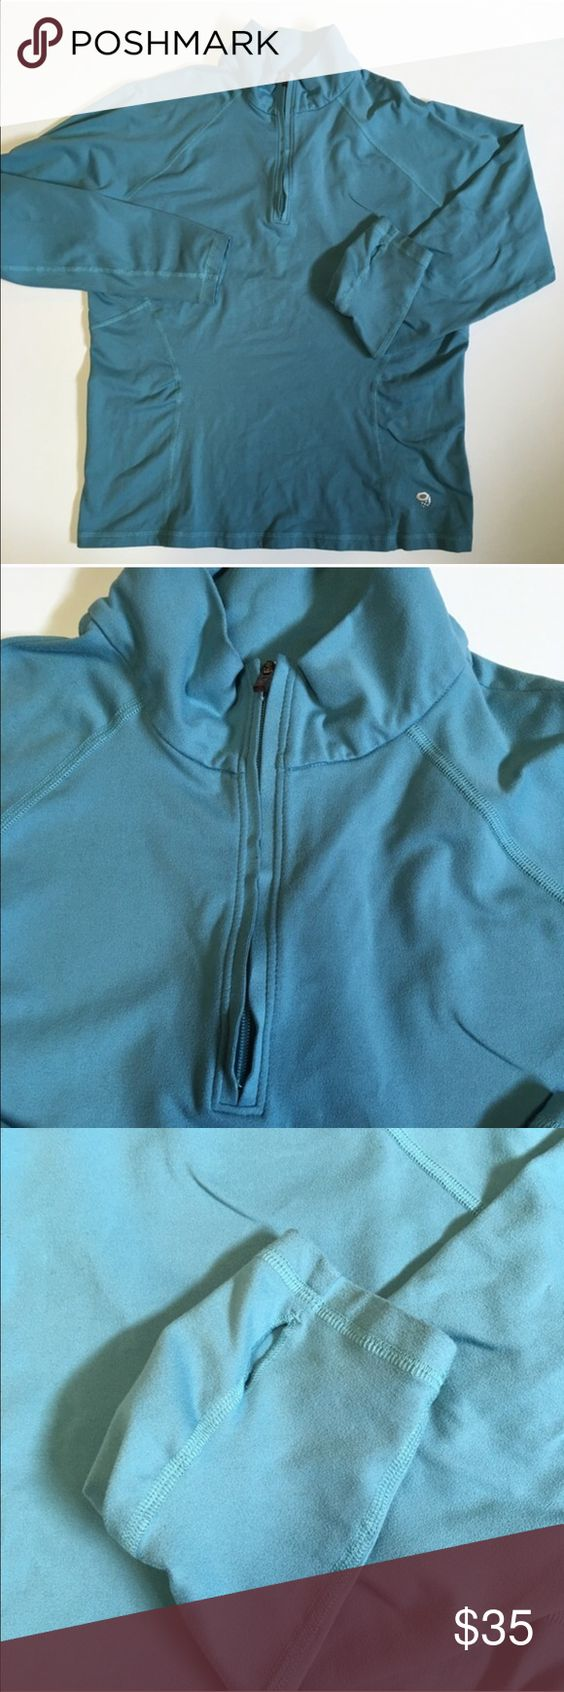 "Mountain Hard Wear Blue Pullover Quarter Zip Light turquoise blue quarter zip pullover. Thumbholes at sleeve ends. Lightweight polyester/Elastane fabric. About 42"" at bust, unstretched, and 25"" from shoulder to bottom hem. Mountain Hard Wear Jackets & Coats"